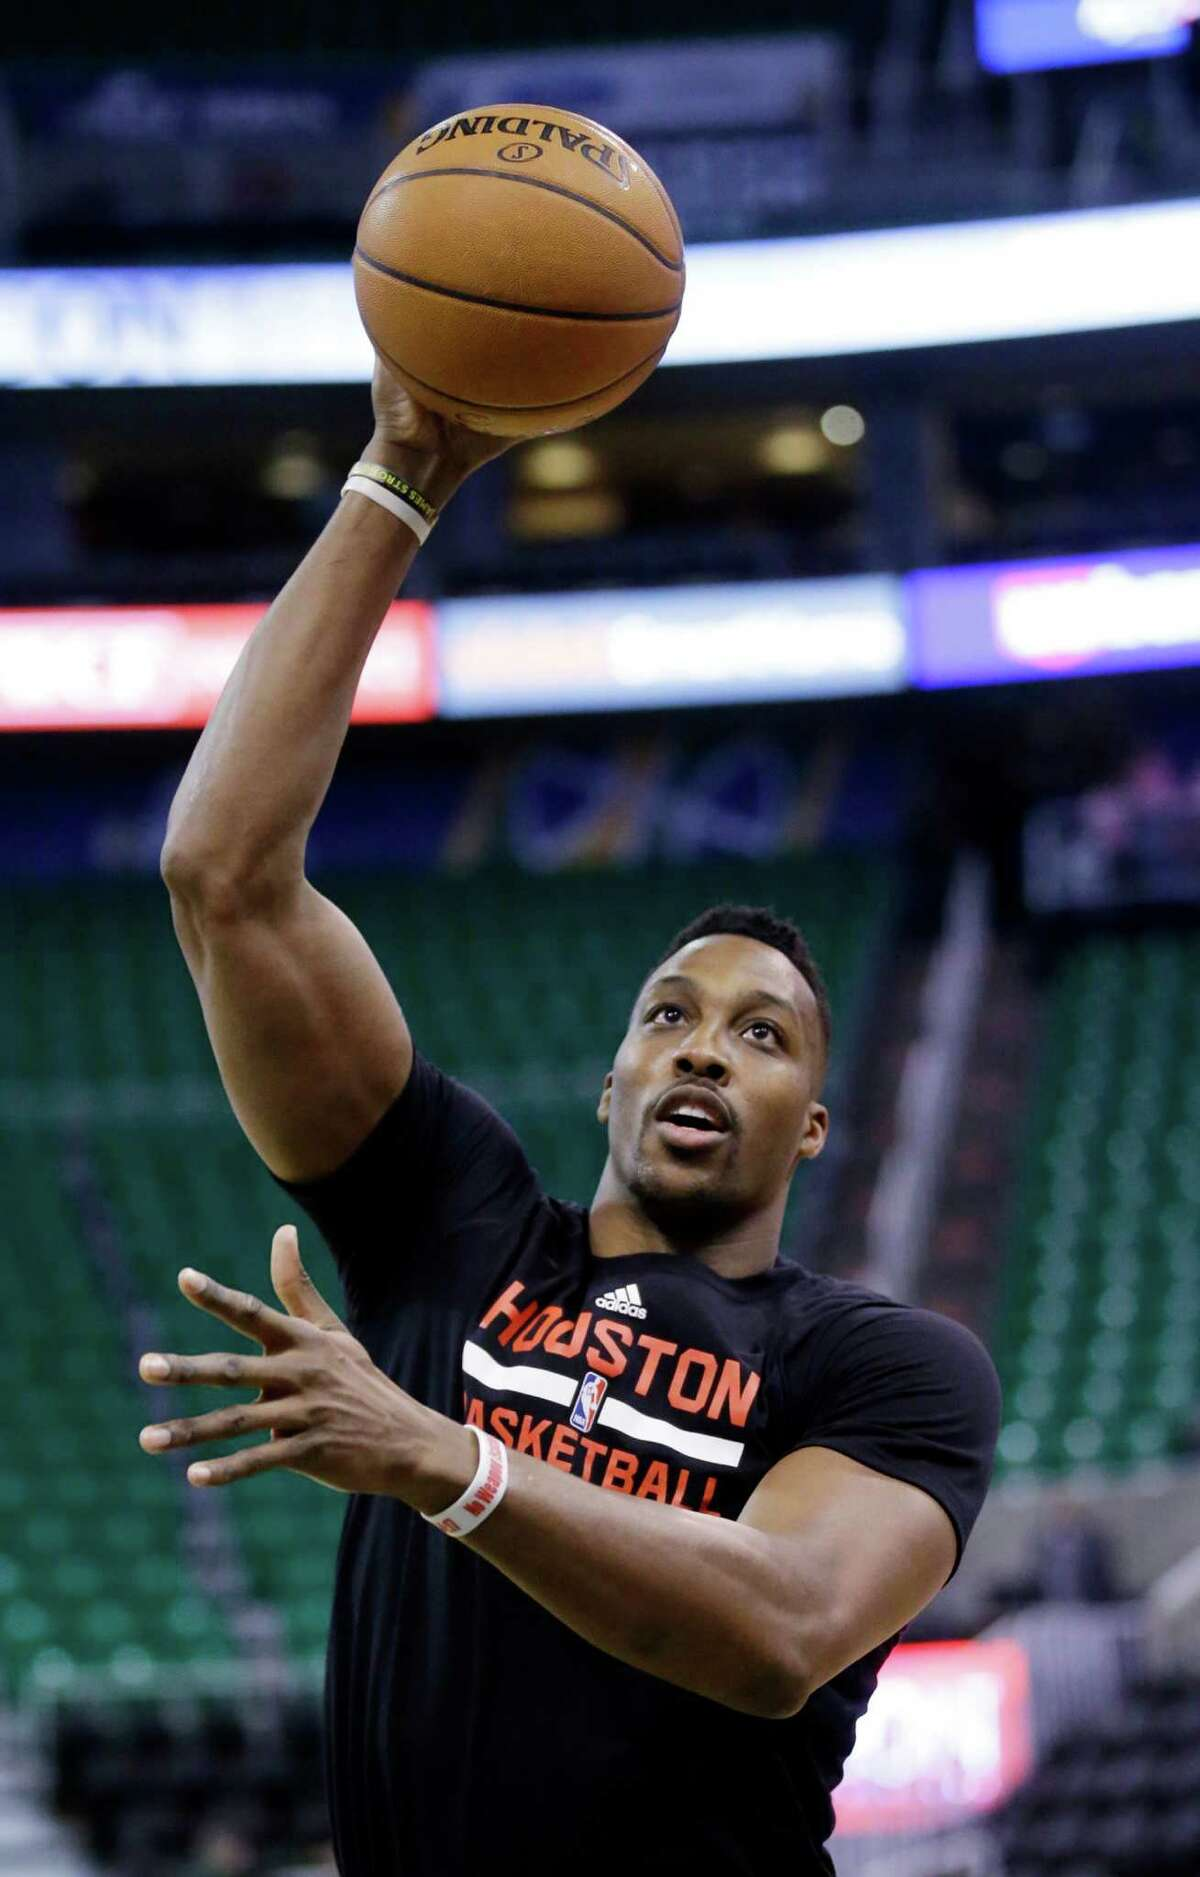 Houston Rockets center Dwight Howard shoots during practice before the start of their NBA basketball game against the Utah Jazz Tuesday, Feb. 23, 2016, in Salt Lake City. (AP Photo/Rick Bowmer)